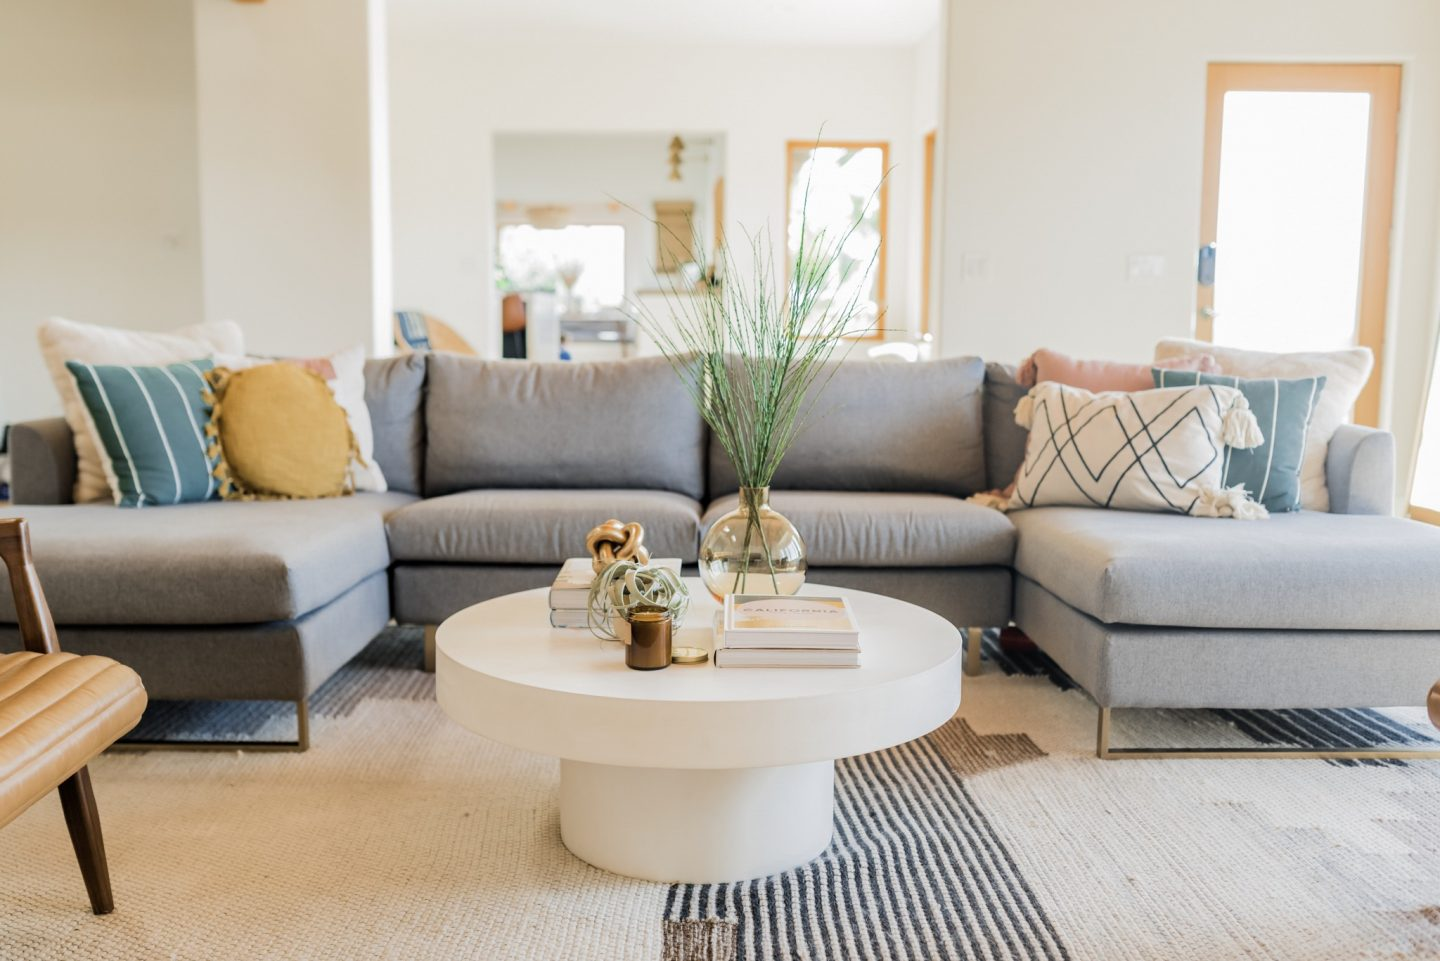 Home Remodel: Modern Family Room Reveal by popular California life and style blog, Navy Grace: image of a modern family room with a large grey sectional couch, leather arm chair and round white coffee table.